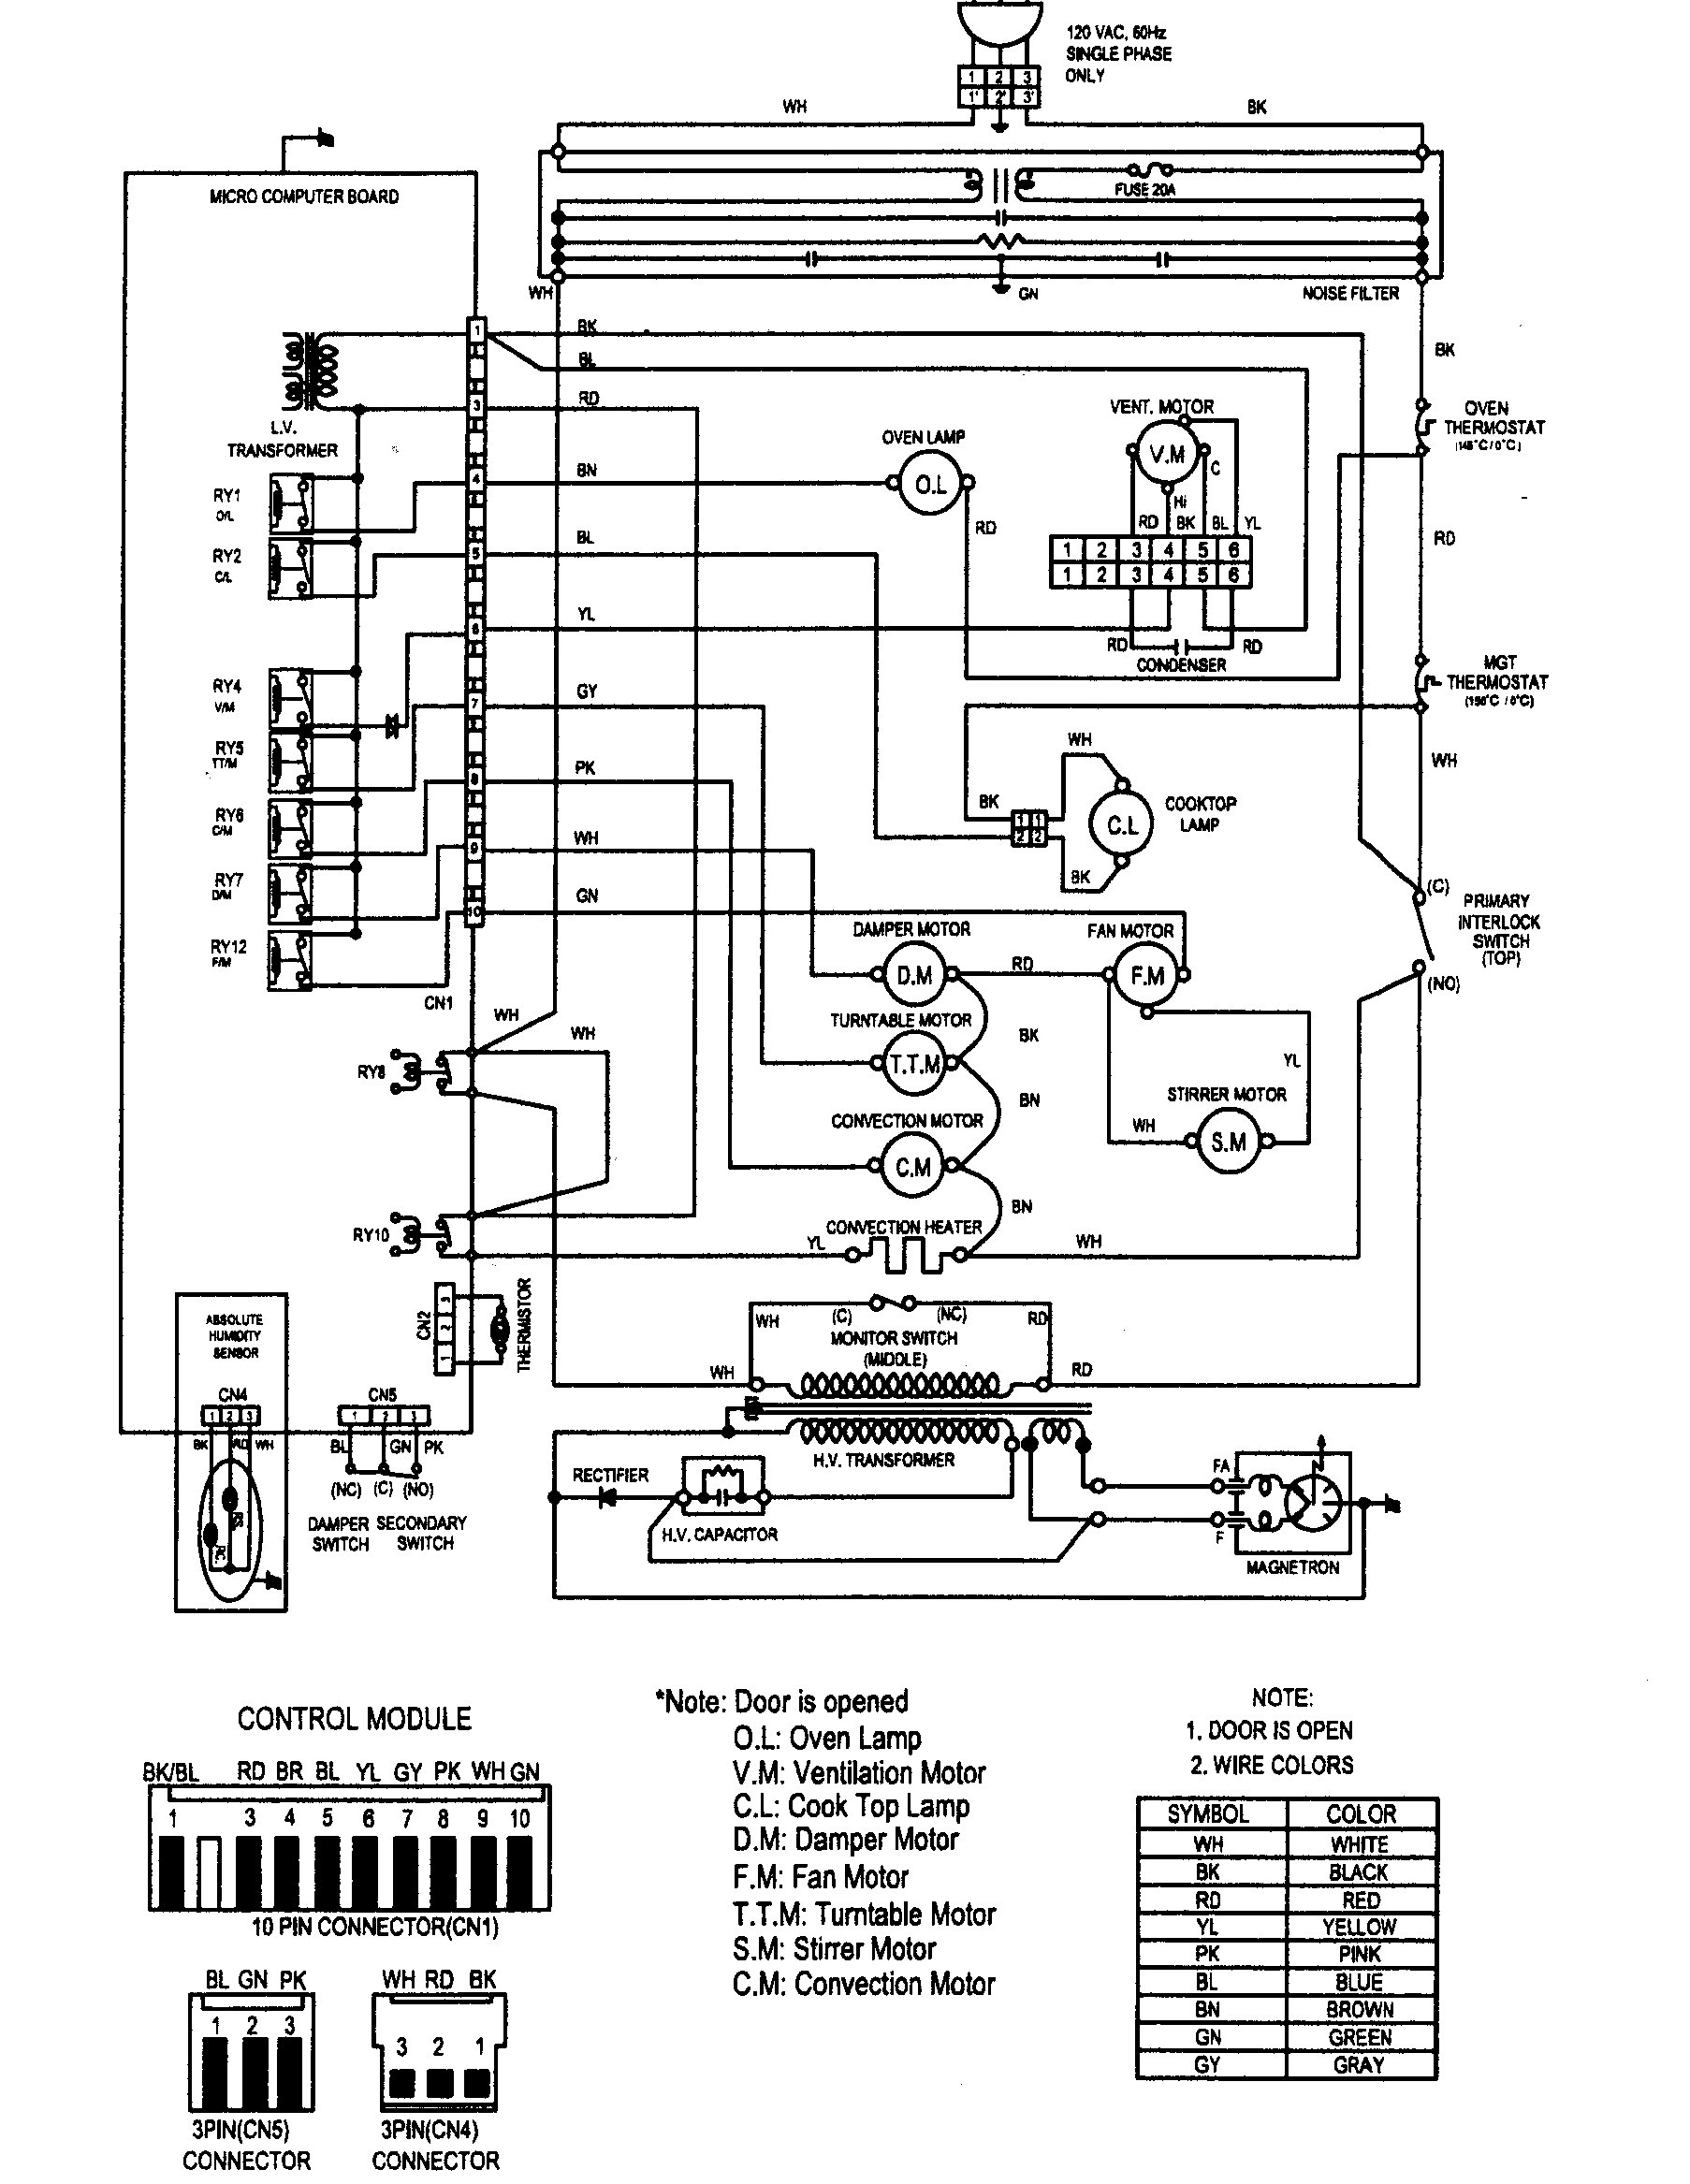 Wiring Diagram For Kenmore Elite Refrigerator Copy Best